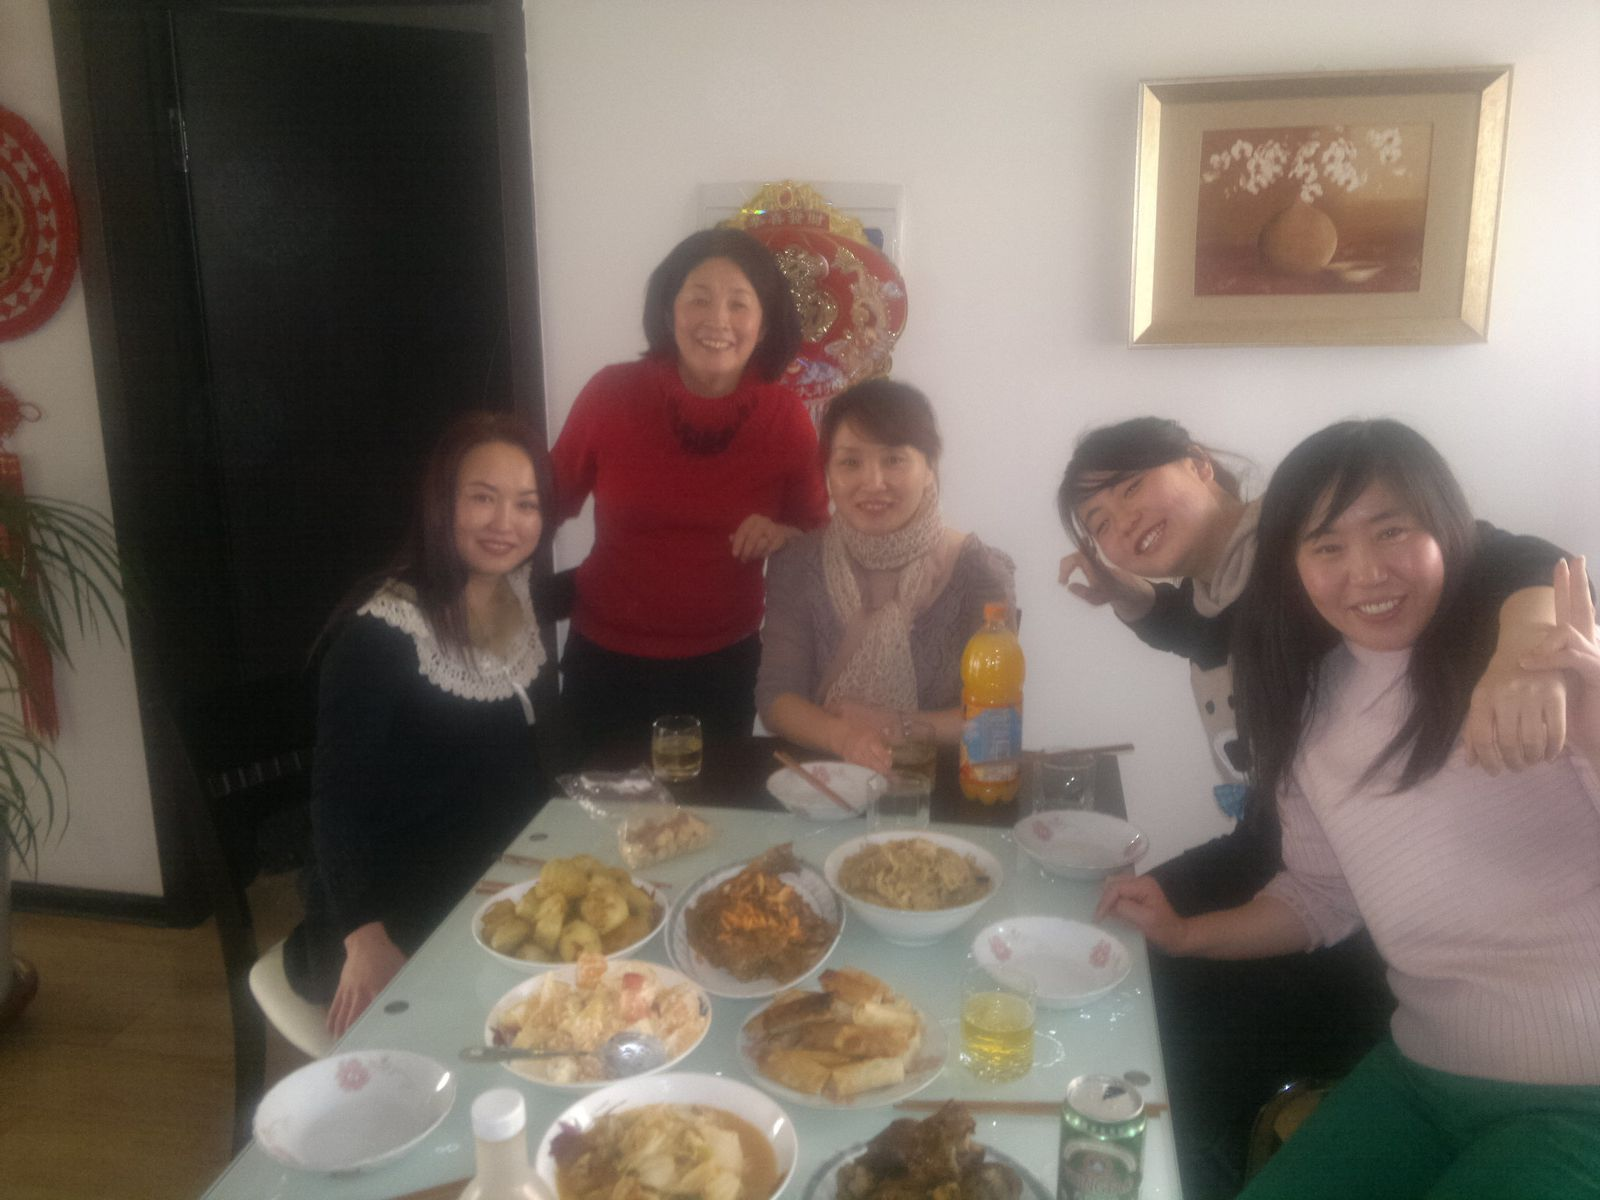 Surrounded by women having a New year lunch